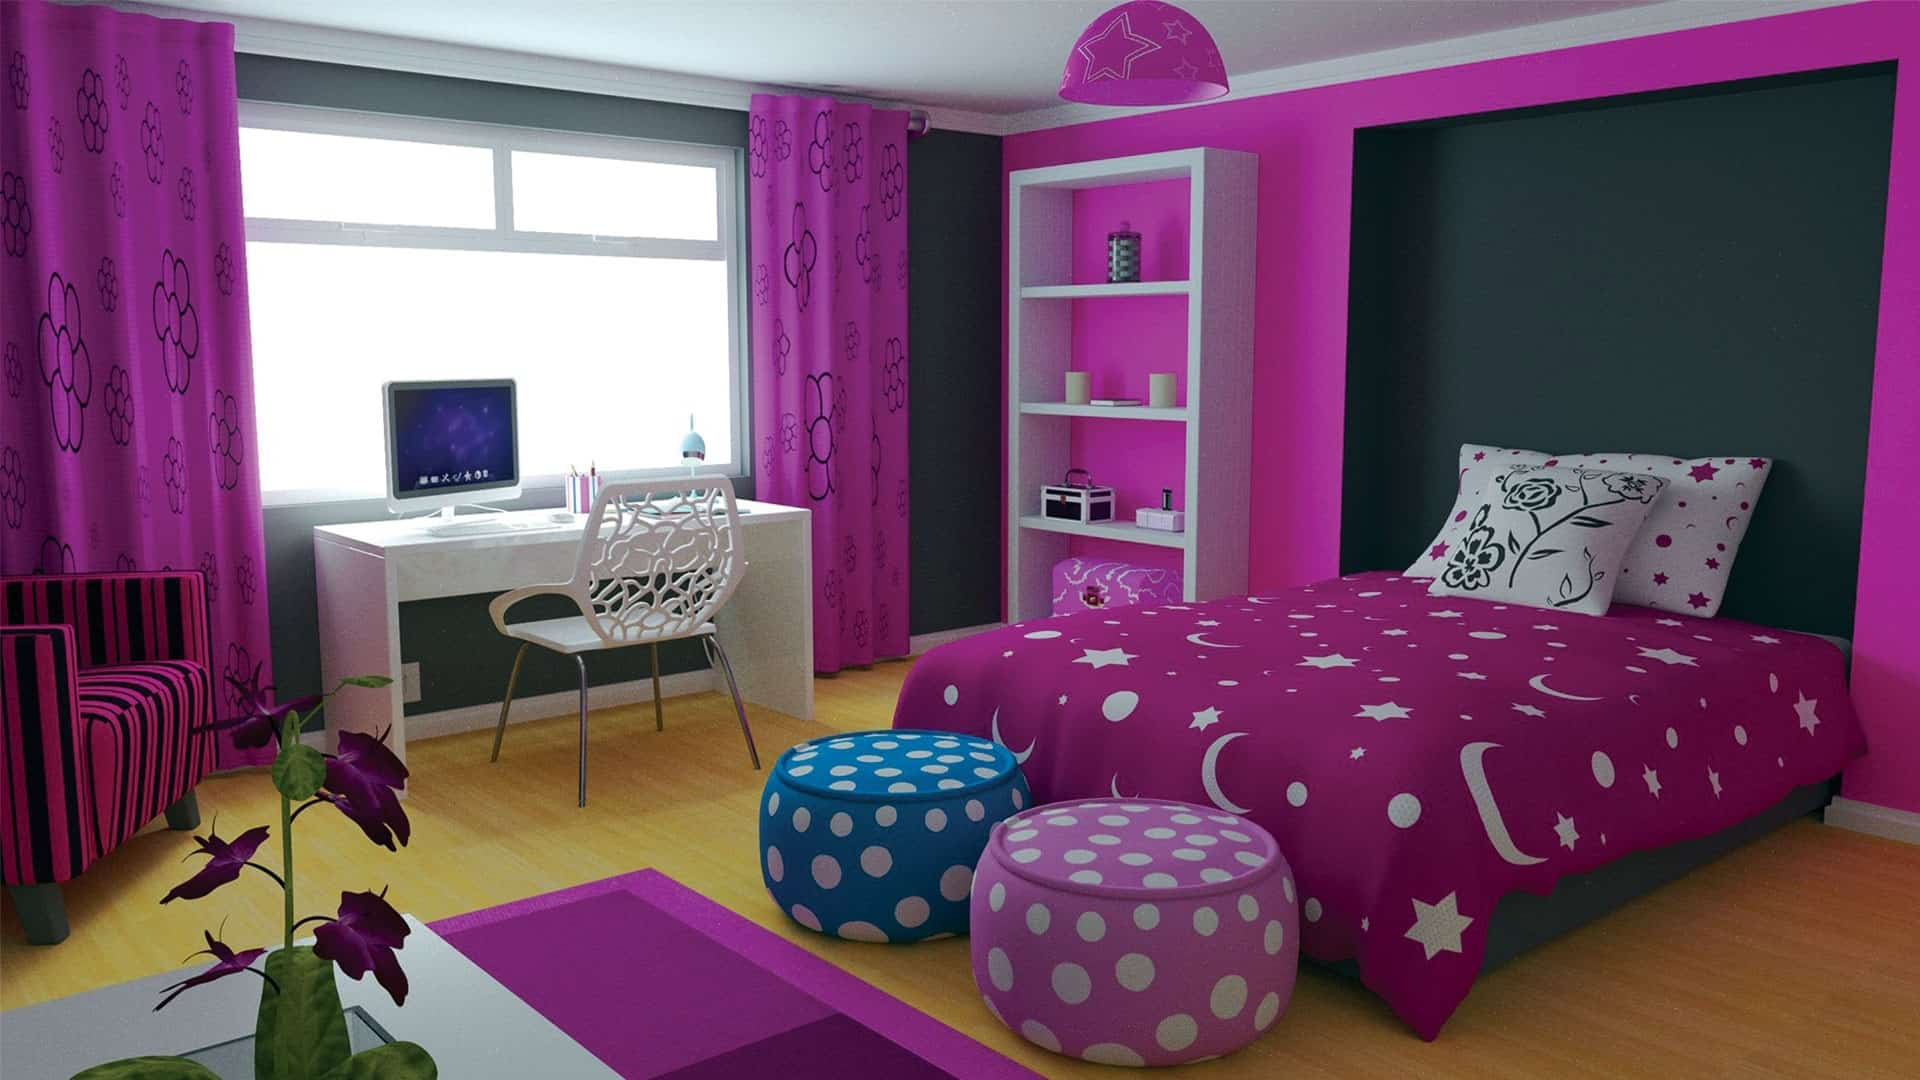 Home decor trends 2017 purple teen room - Bed for girls room ...